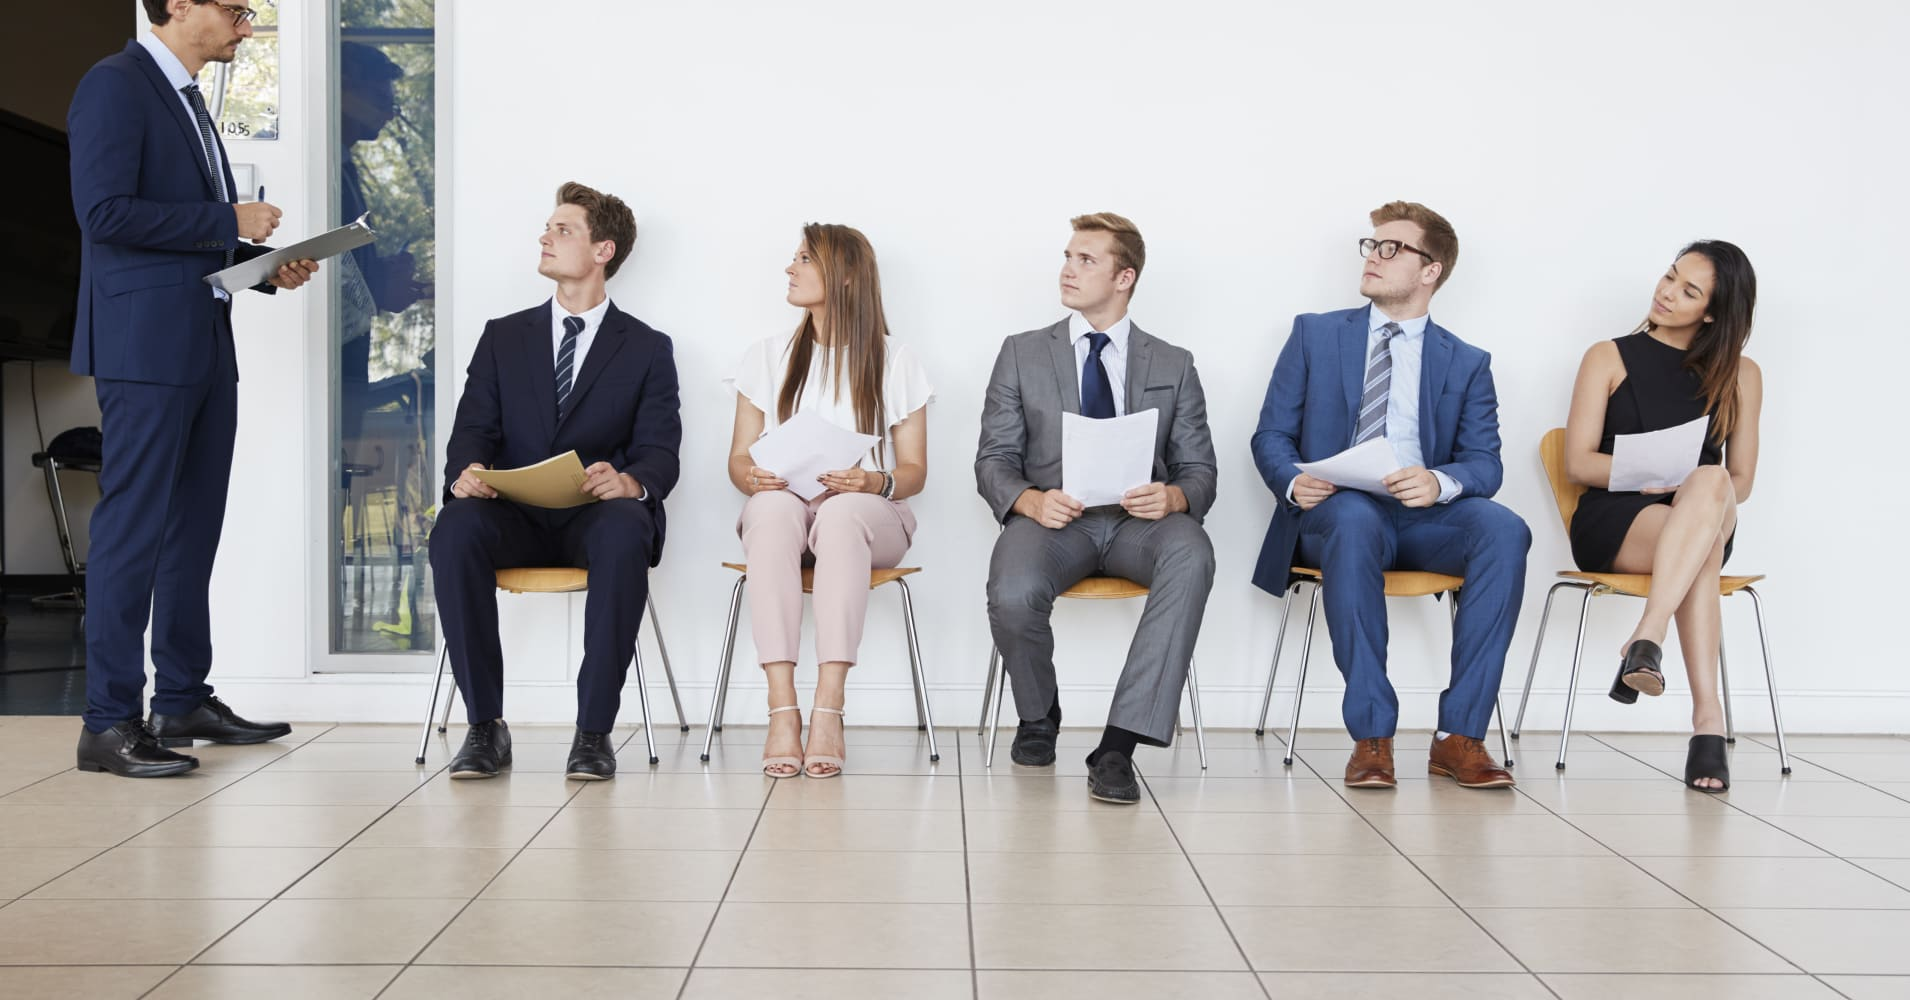 Recruiter and people waiting for job interviews, full length